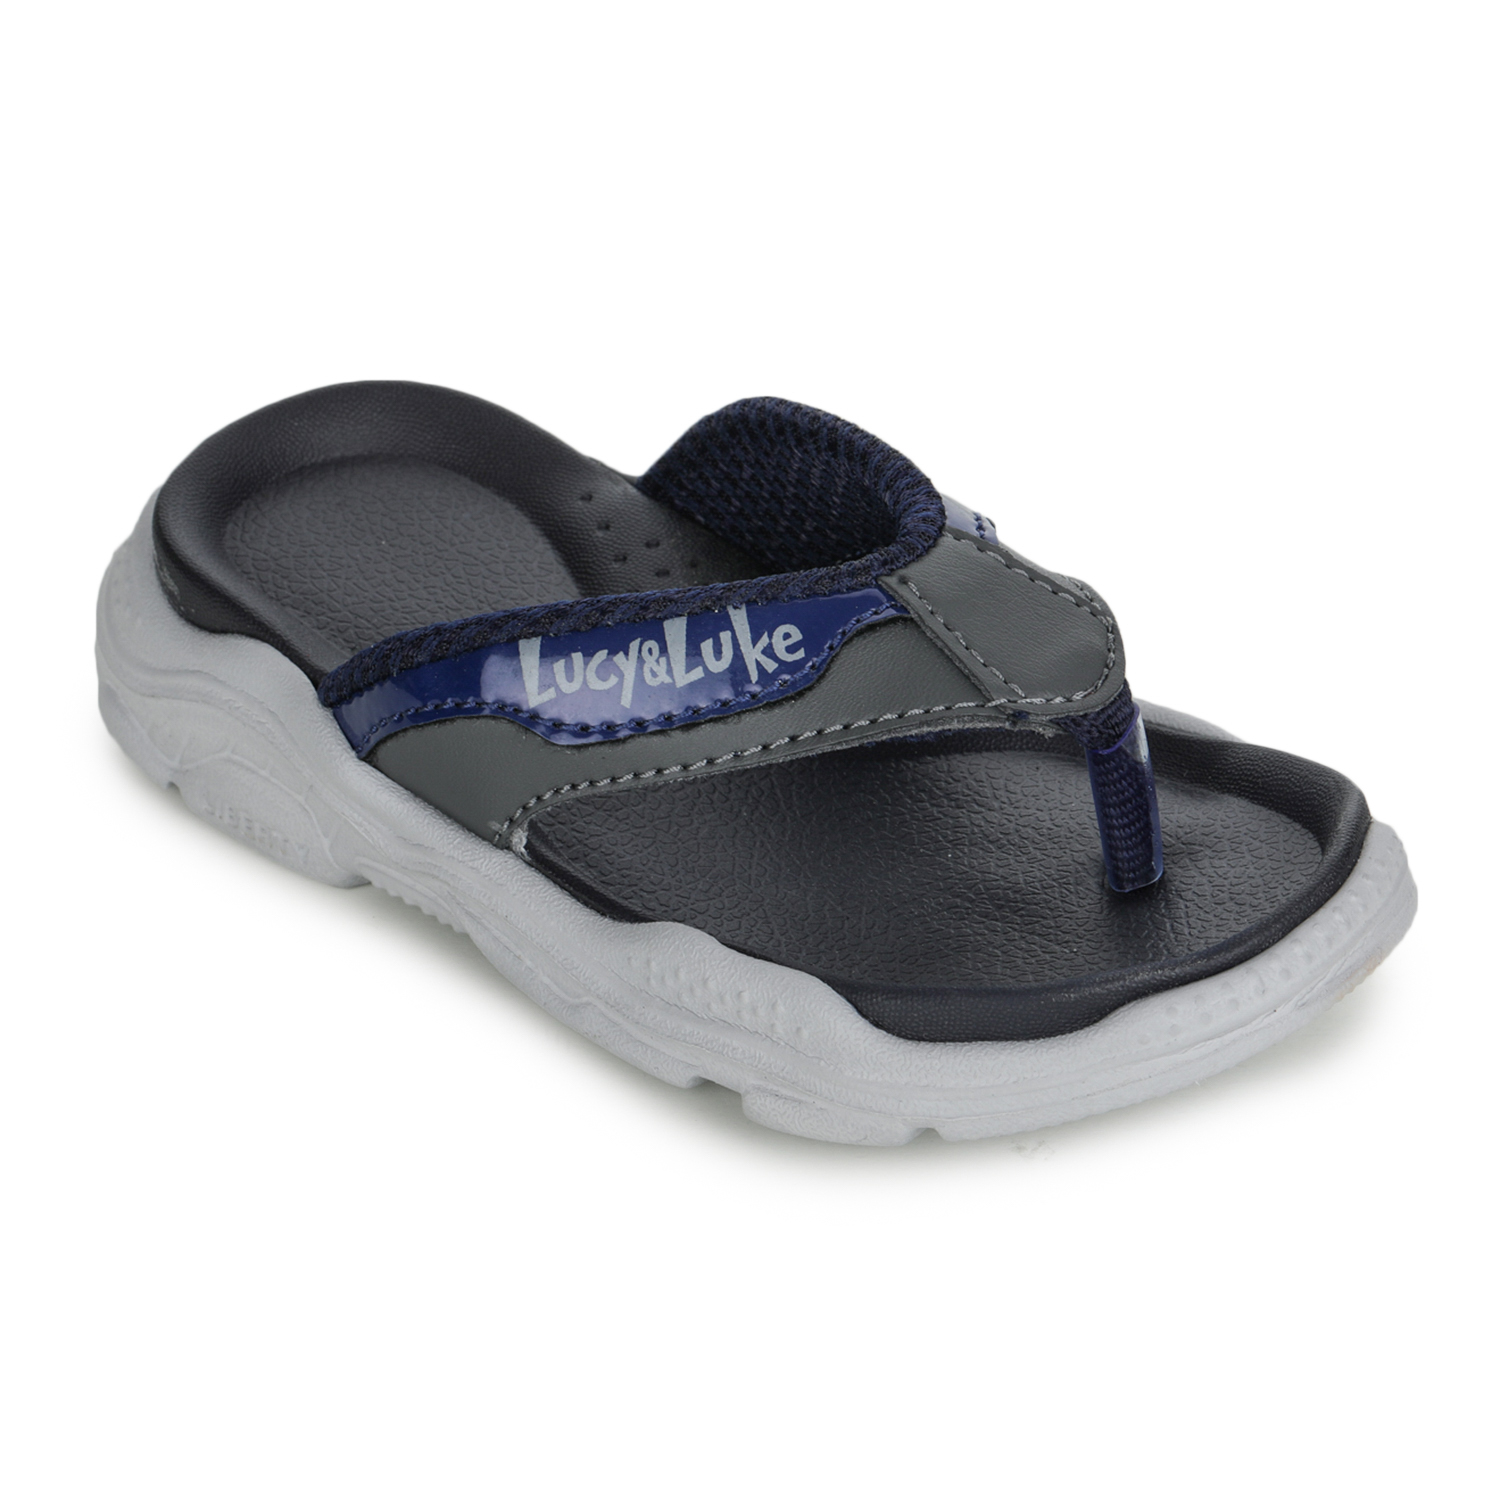 Liberty | Liberty LUCY & LUKE Slippers RICKY-1T_N.BLUE For - Boys